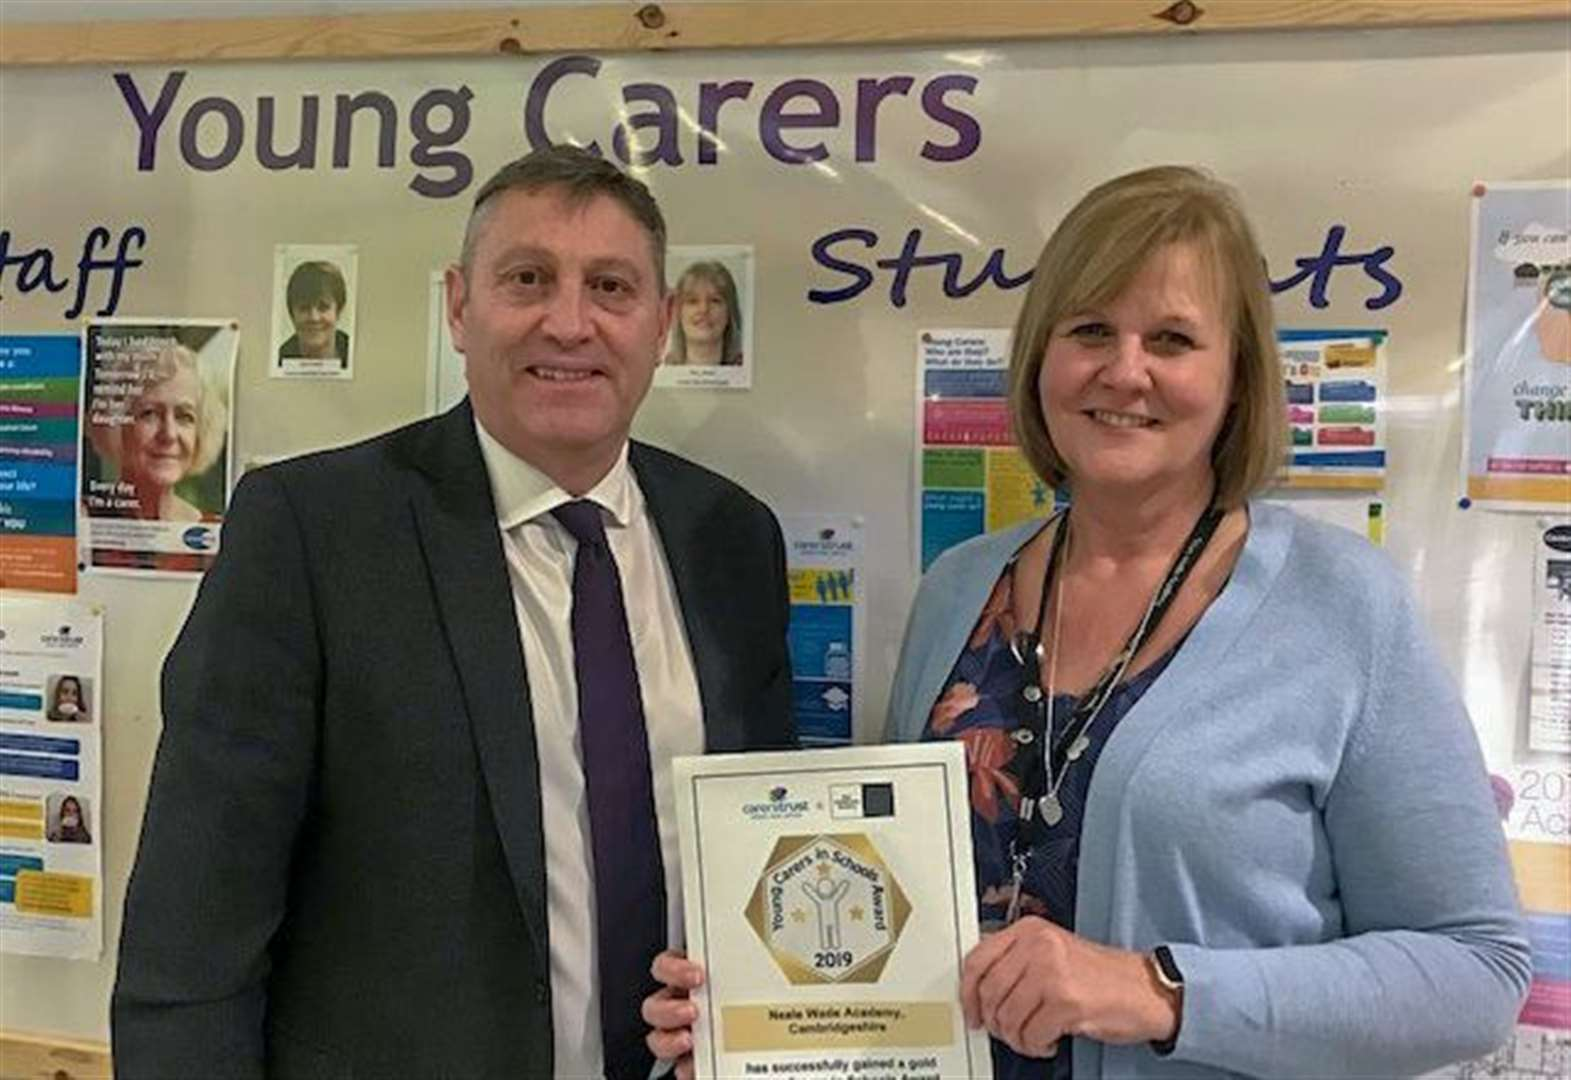 Neale-Wade Academy in March achieves Gold Young Carers Award